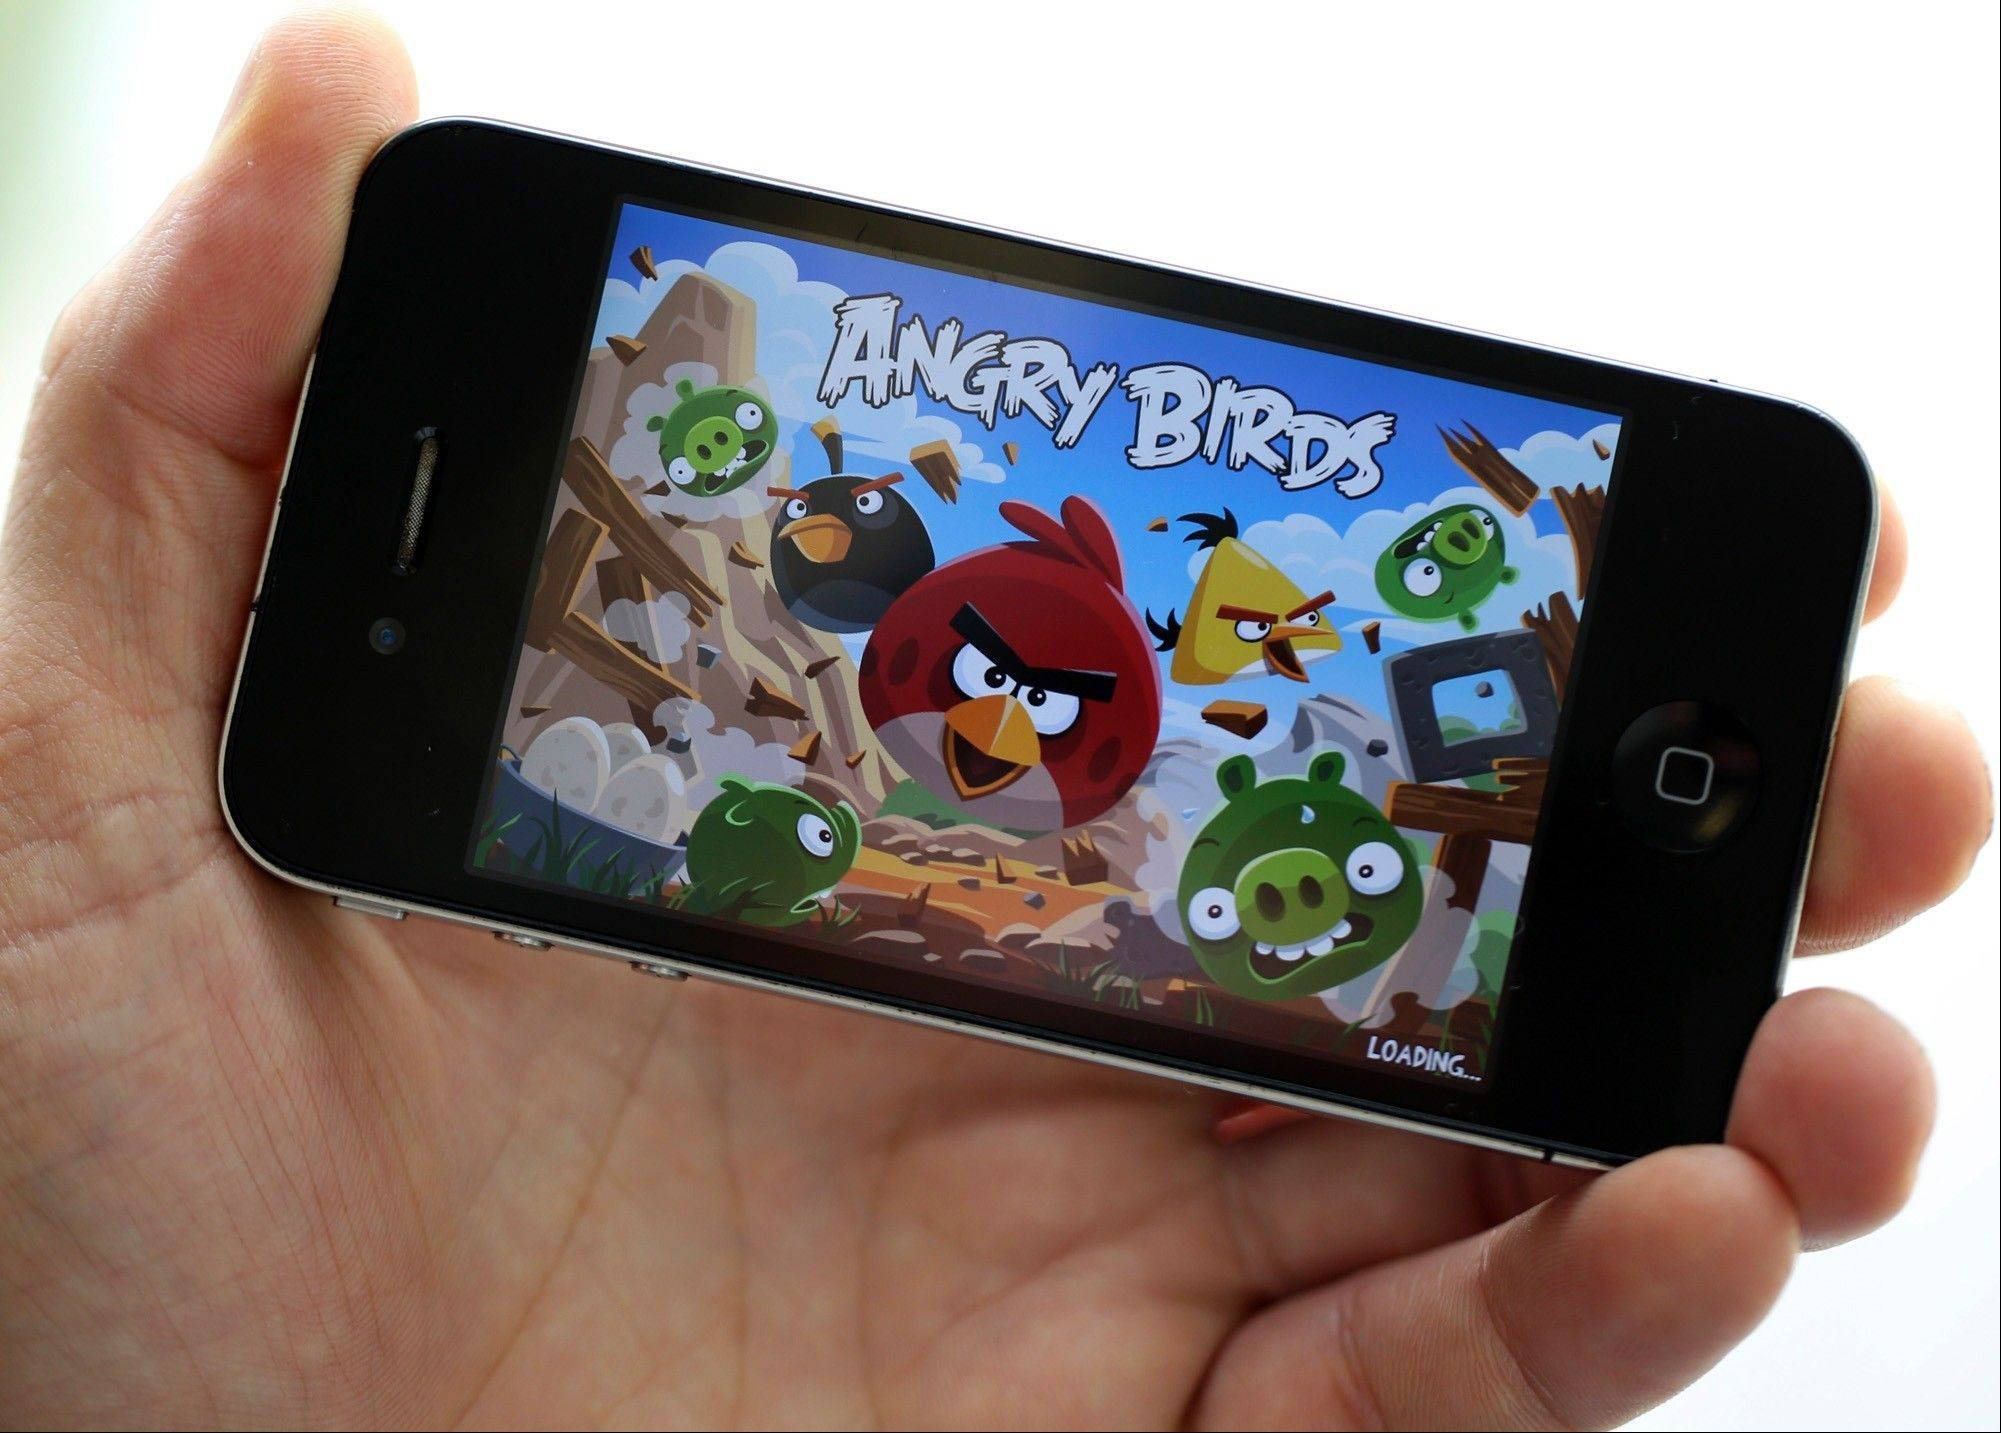 The ��Angry Birds�� mobile-phone game, designed by Rovio Mobile, on an Apple iPhone 4. A tablet computer developed by North Korea features the popular game, but the developers of the internationally popular app say they have nothing to do with it.